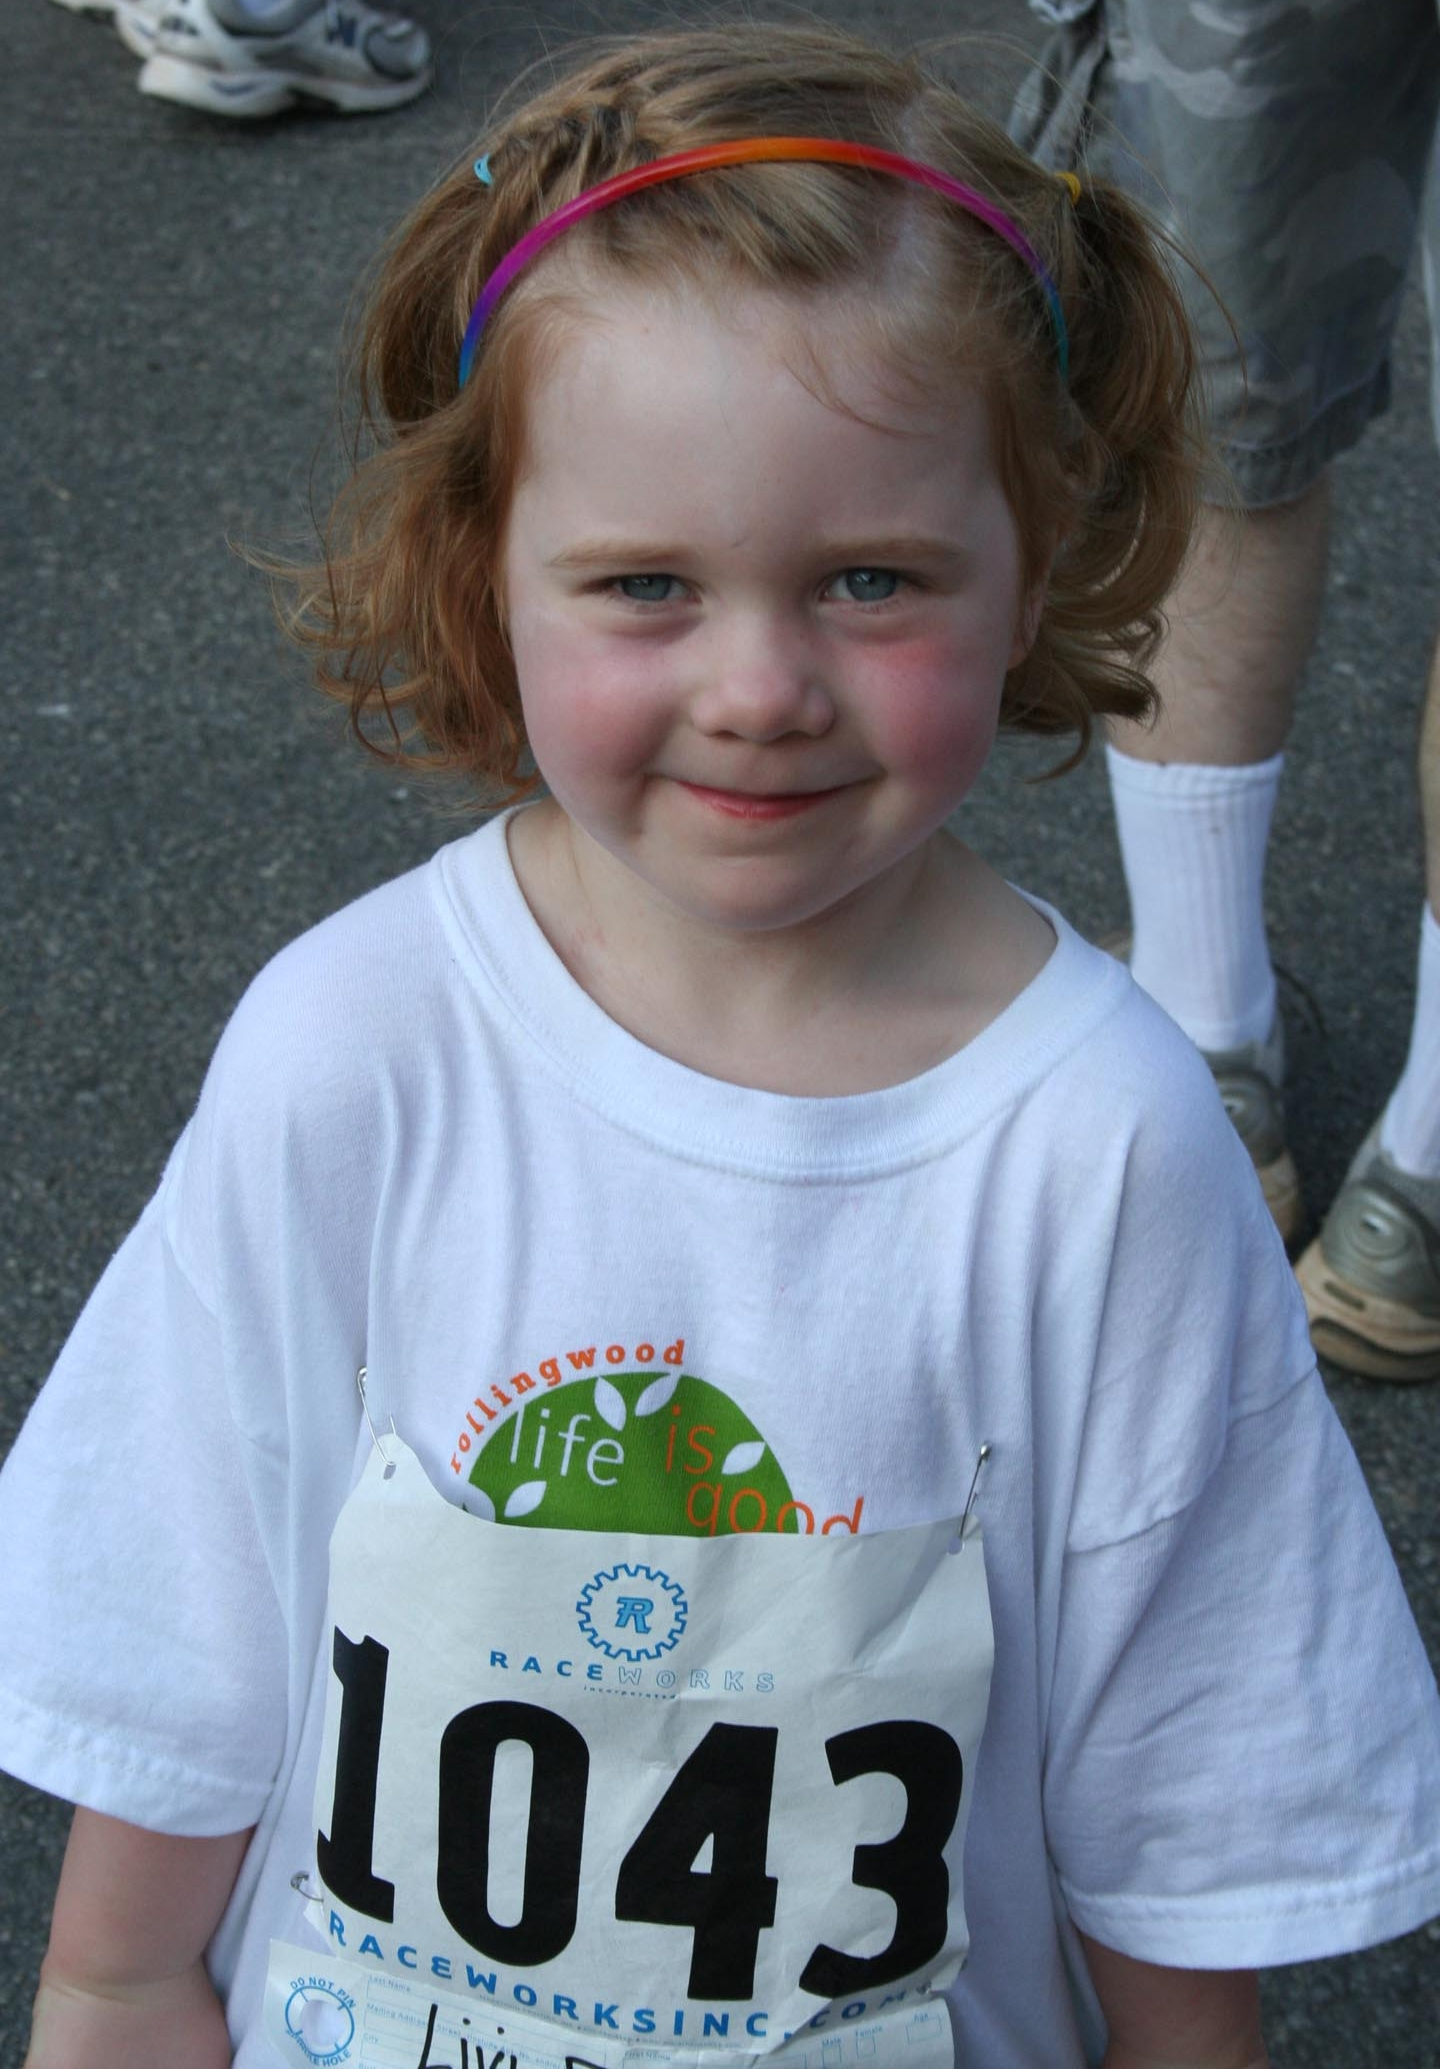 A young runner from the 2011 race